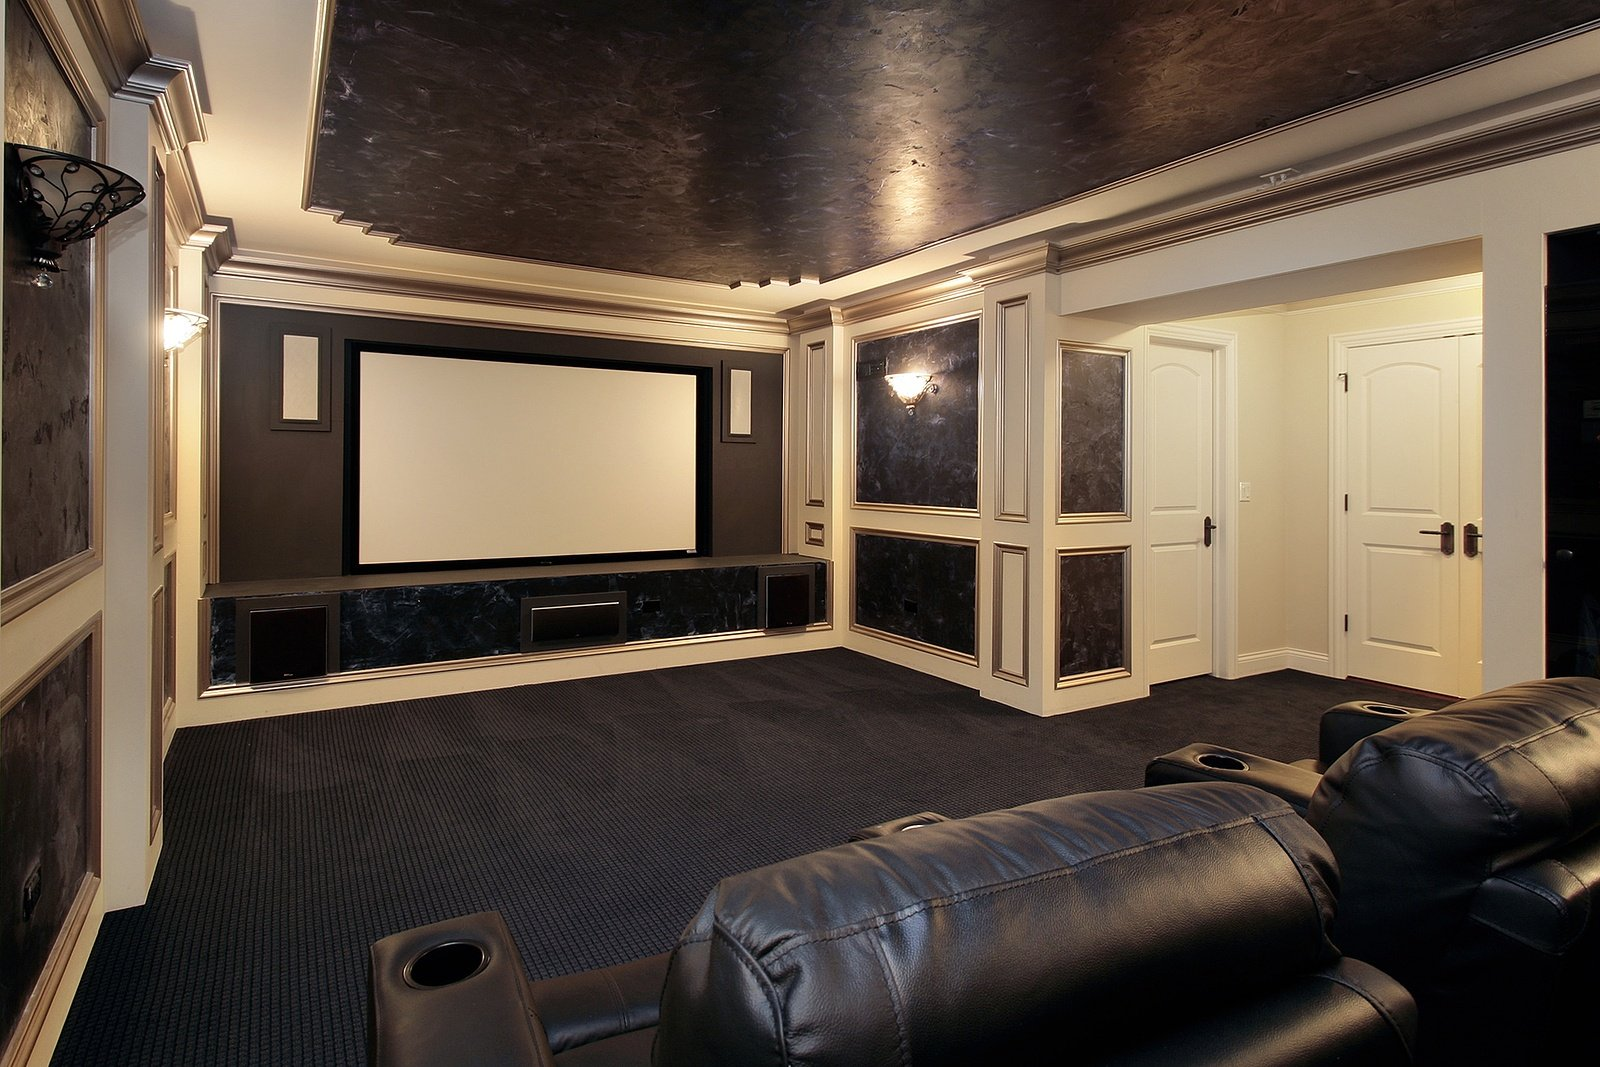 bigstock-Luxury-Theater-Room-5150855.jpg